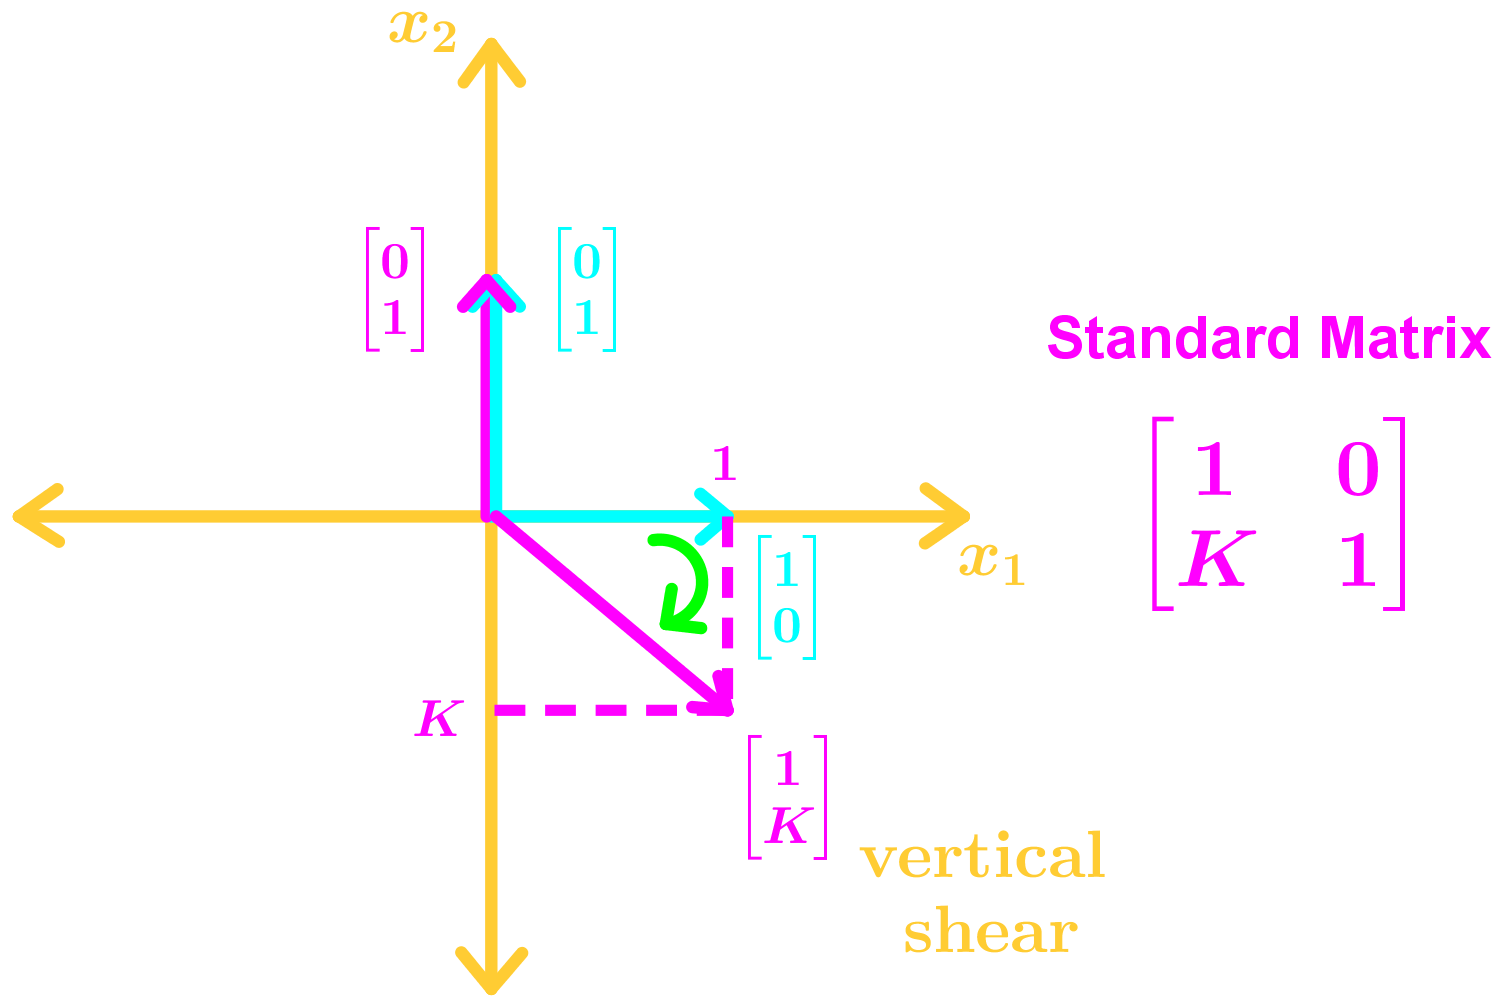 vertical shear